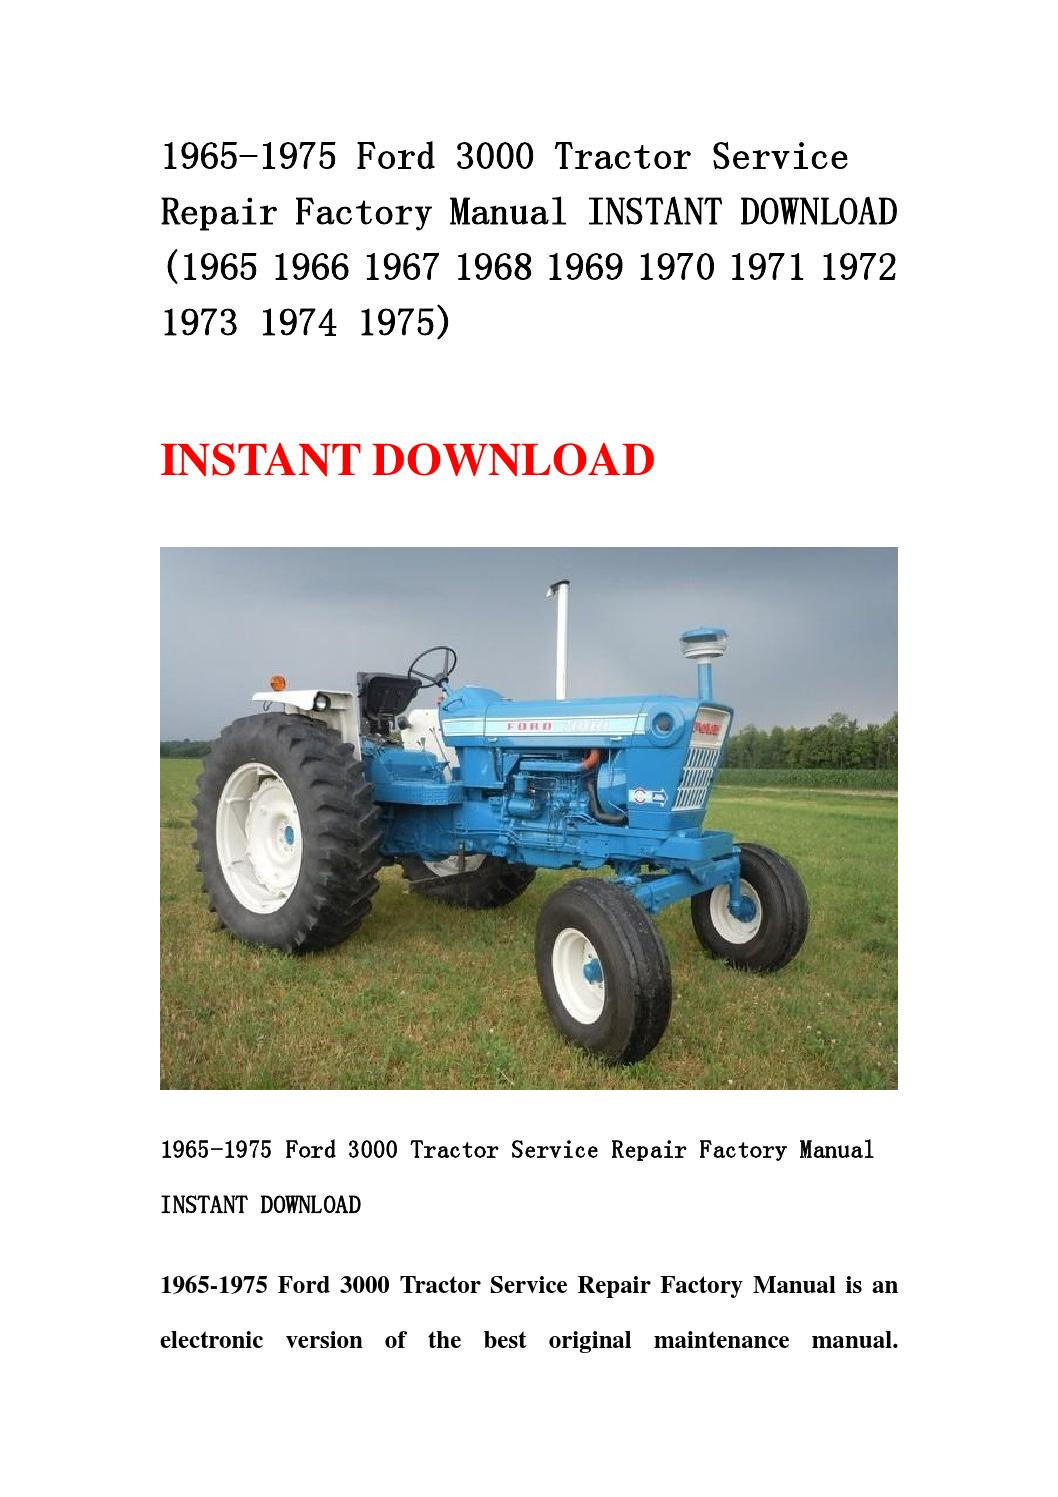 1965 1975 ford 3000 tractor service repair factory manual instant download  (1965 1966 1967 1968 1969 by r2repairmanuals - issuu